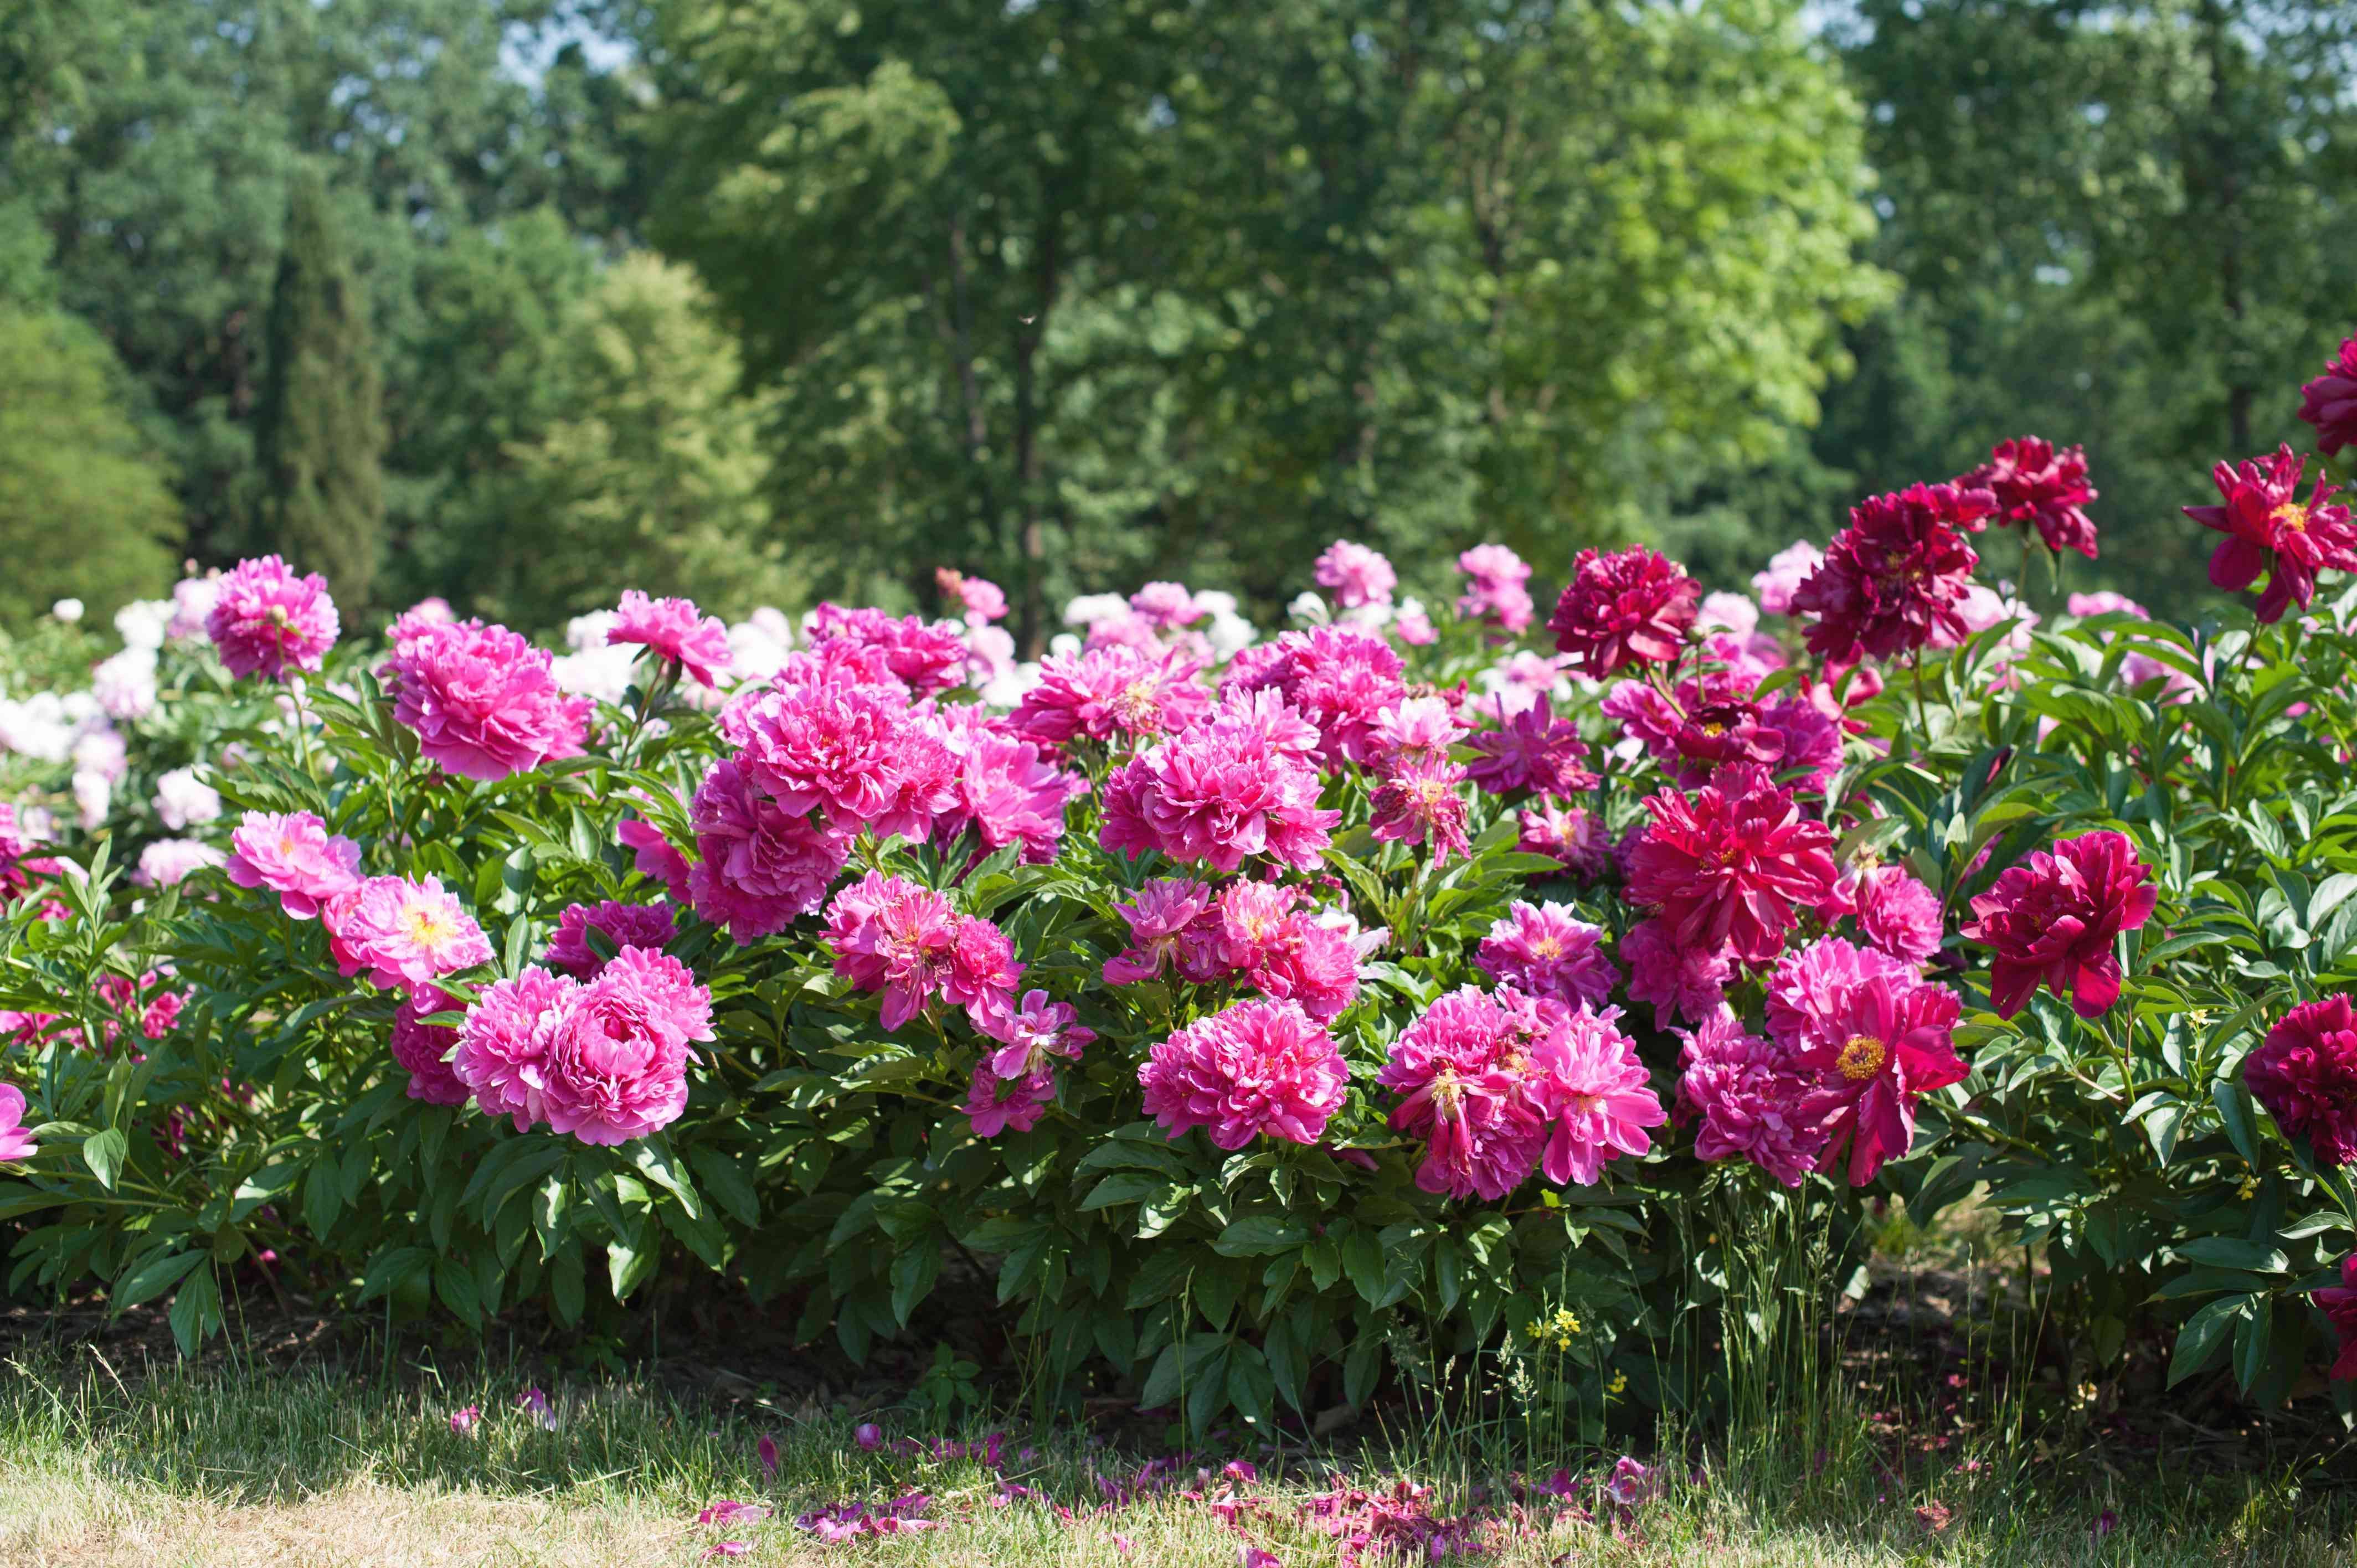 Peonies bushes with pink, red, and white flowers in sunlight